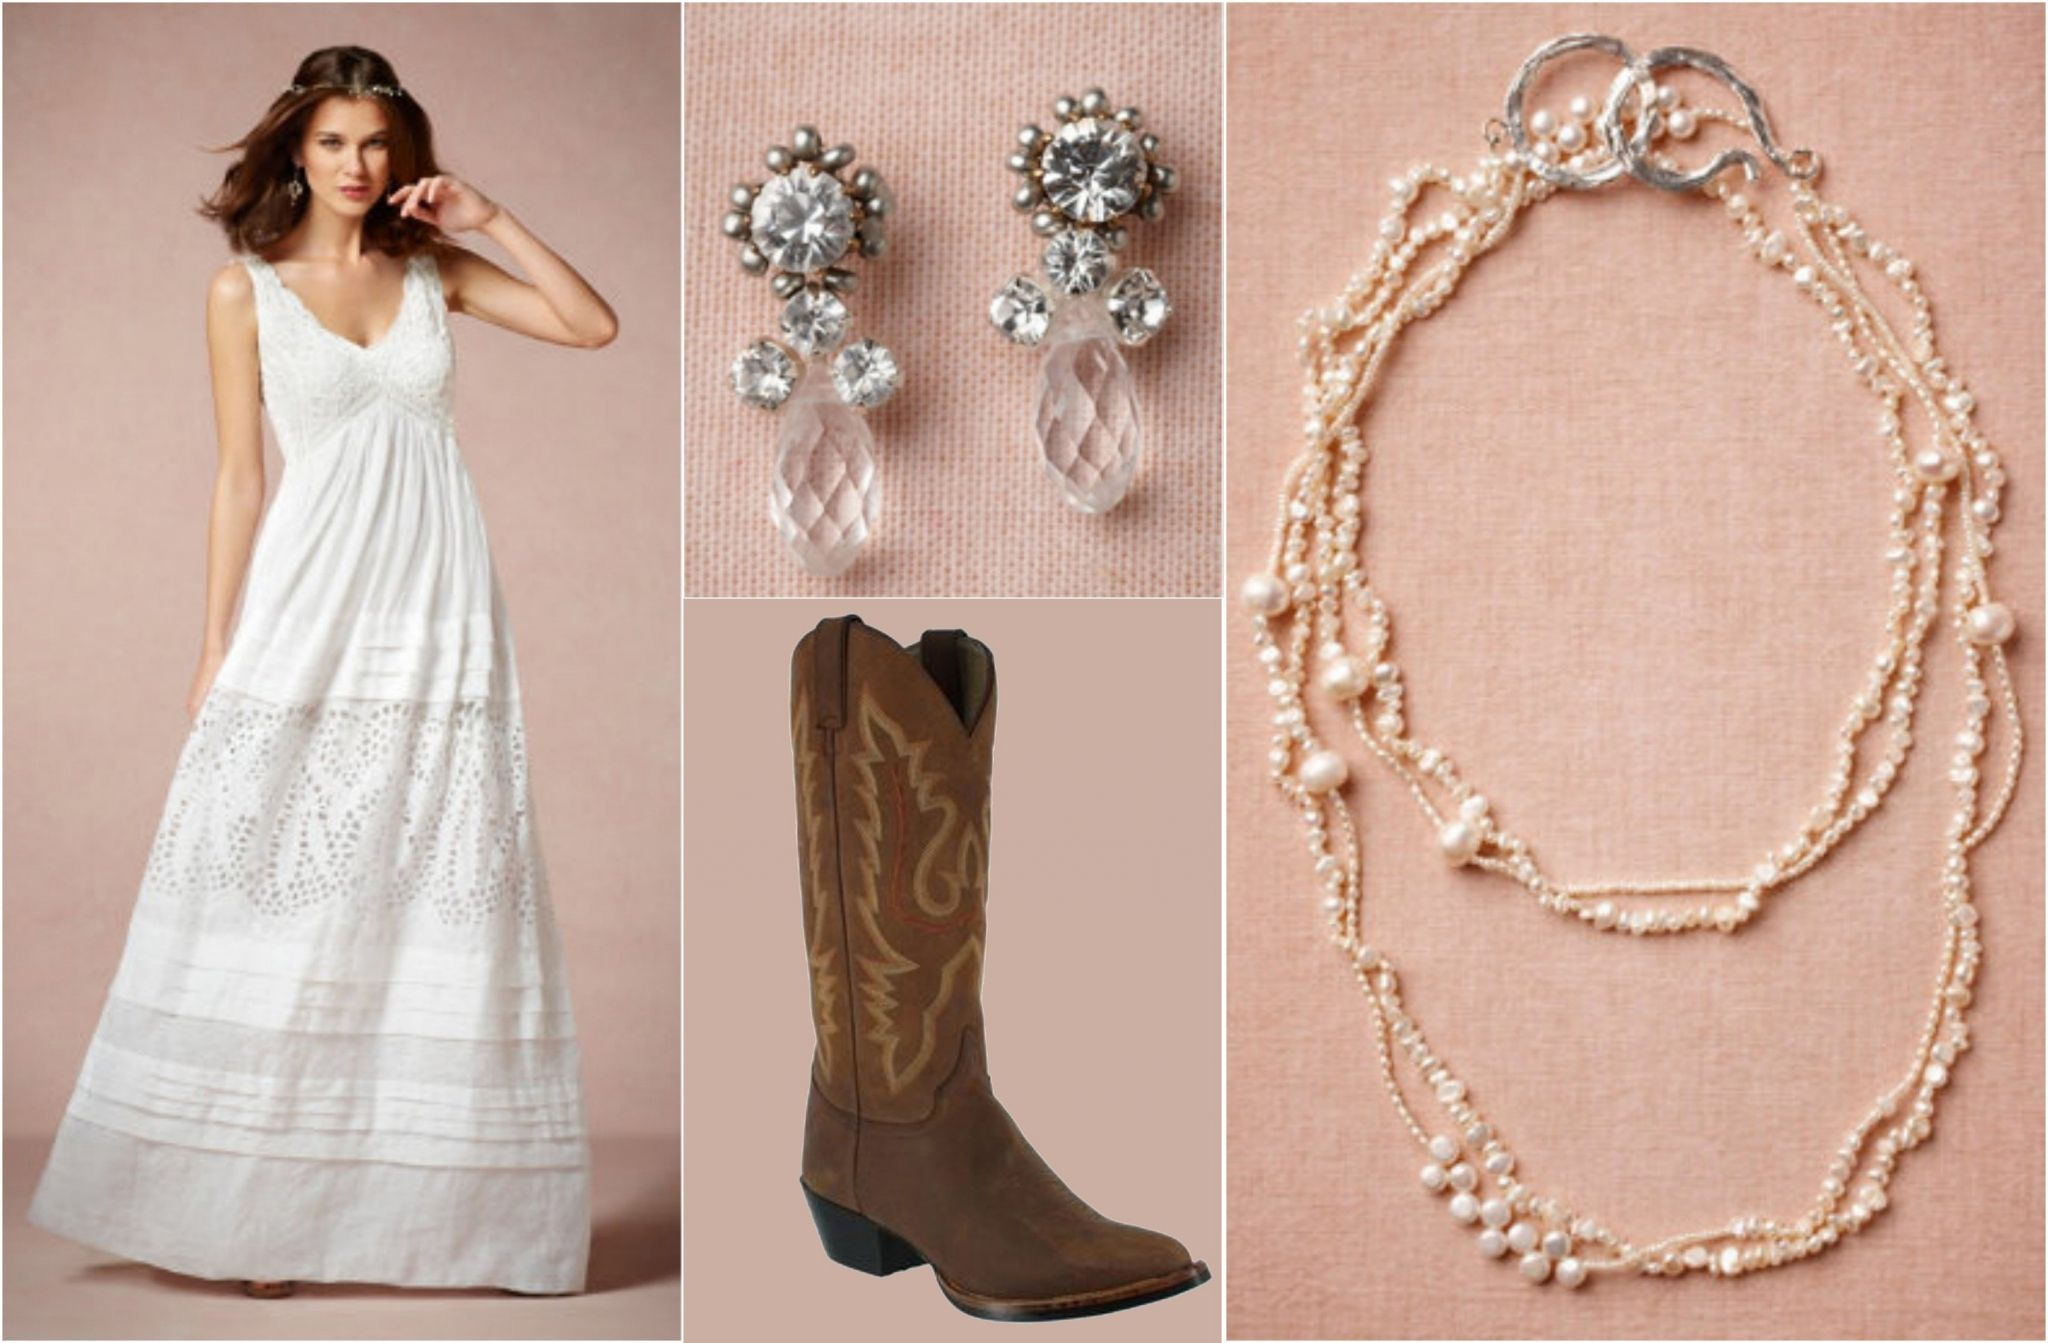 Wedding dresses with cowgirl boots  wedding dress cowgirl boots  dresses for wedding party Check more